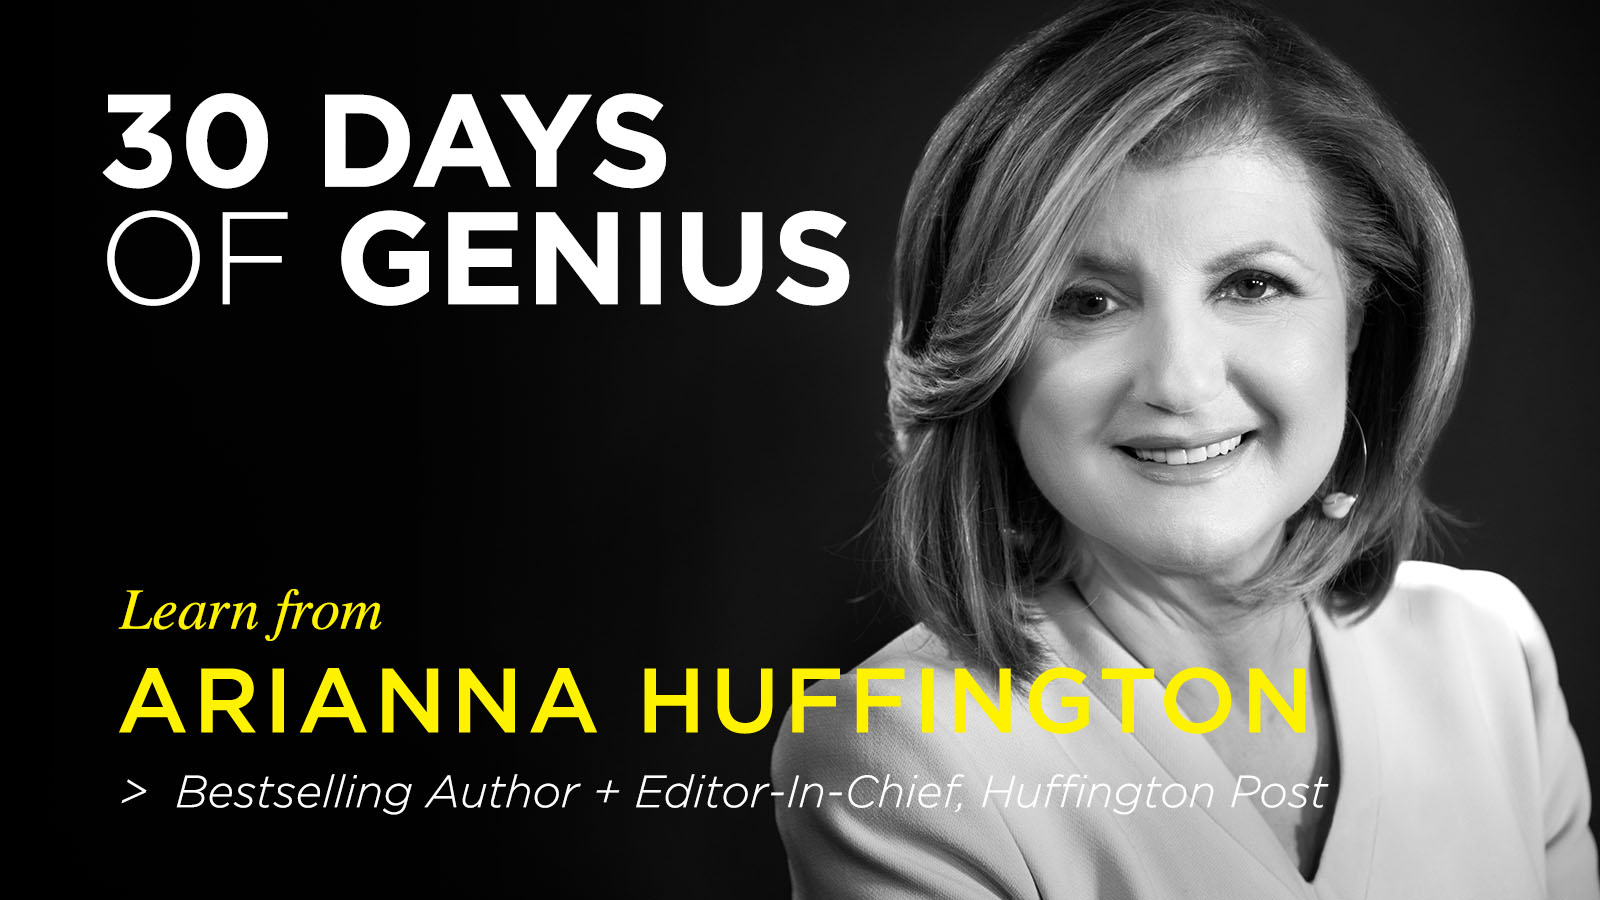 Arianna Huffington 30 Days of Genius on Creative Live